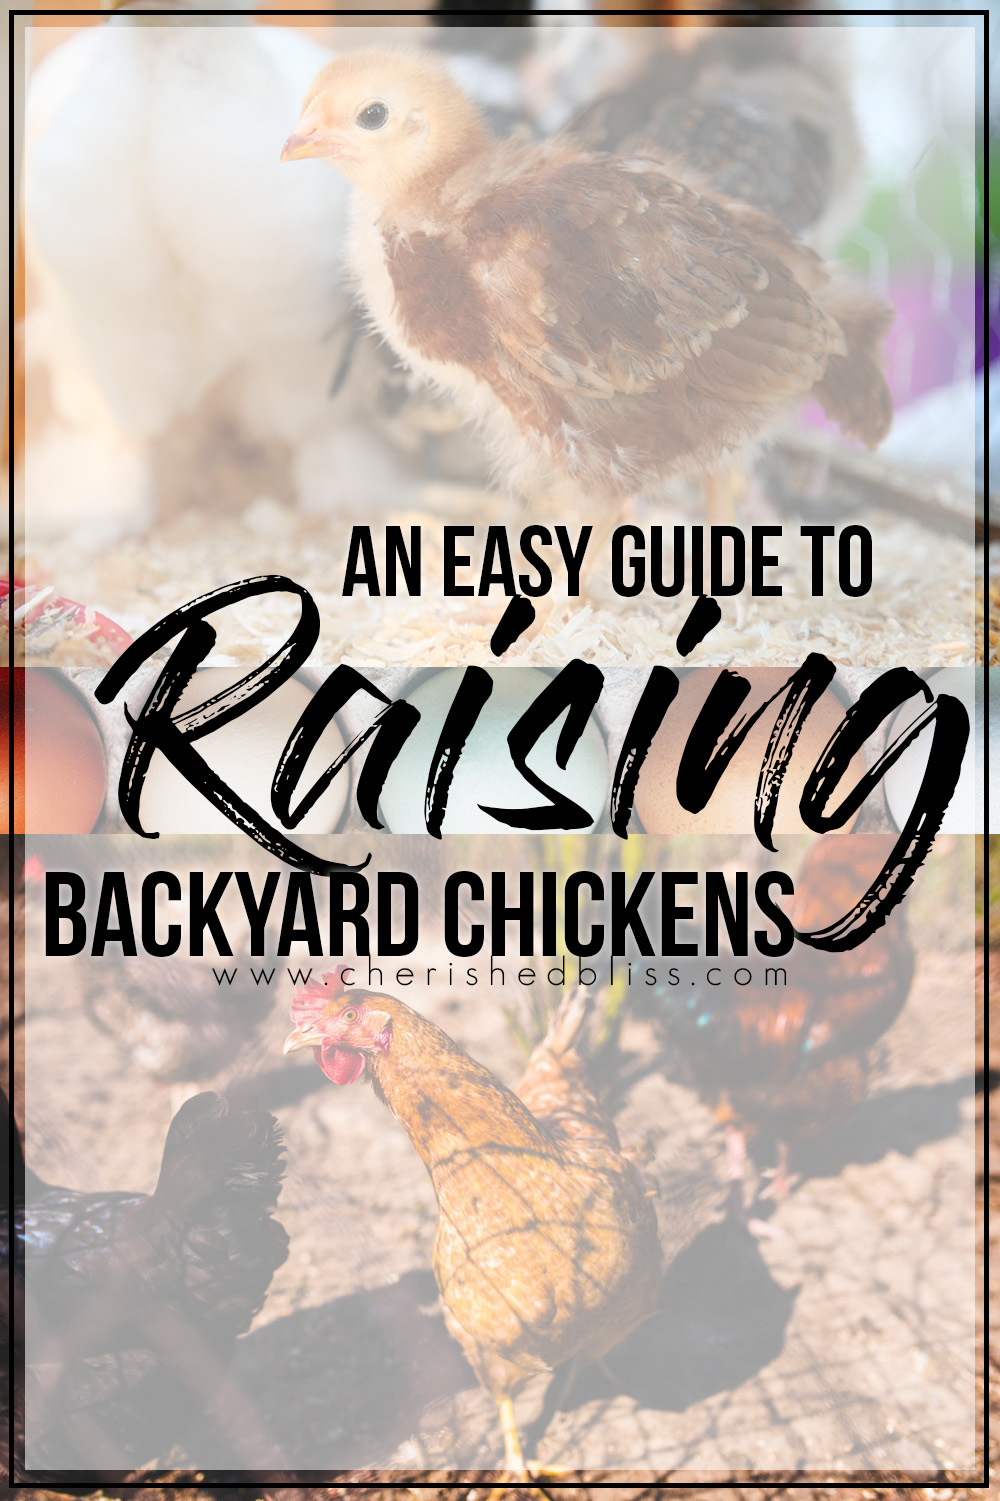 An Easy Guide to Raising Backyard Chickens - Easy Guide To Raising Backyard Chickens Getting Started